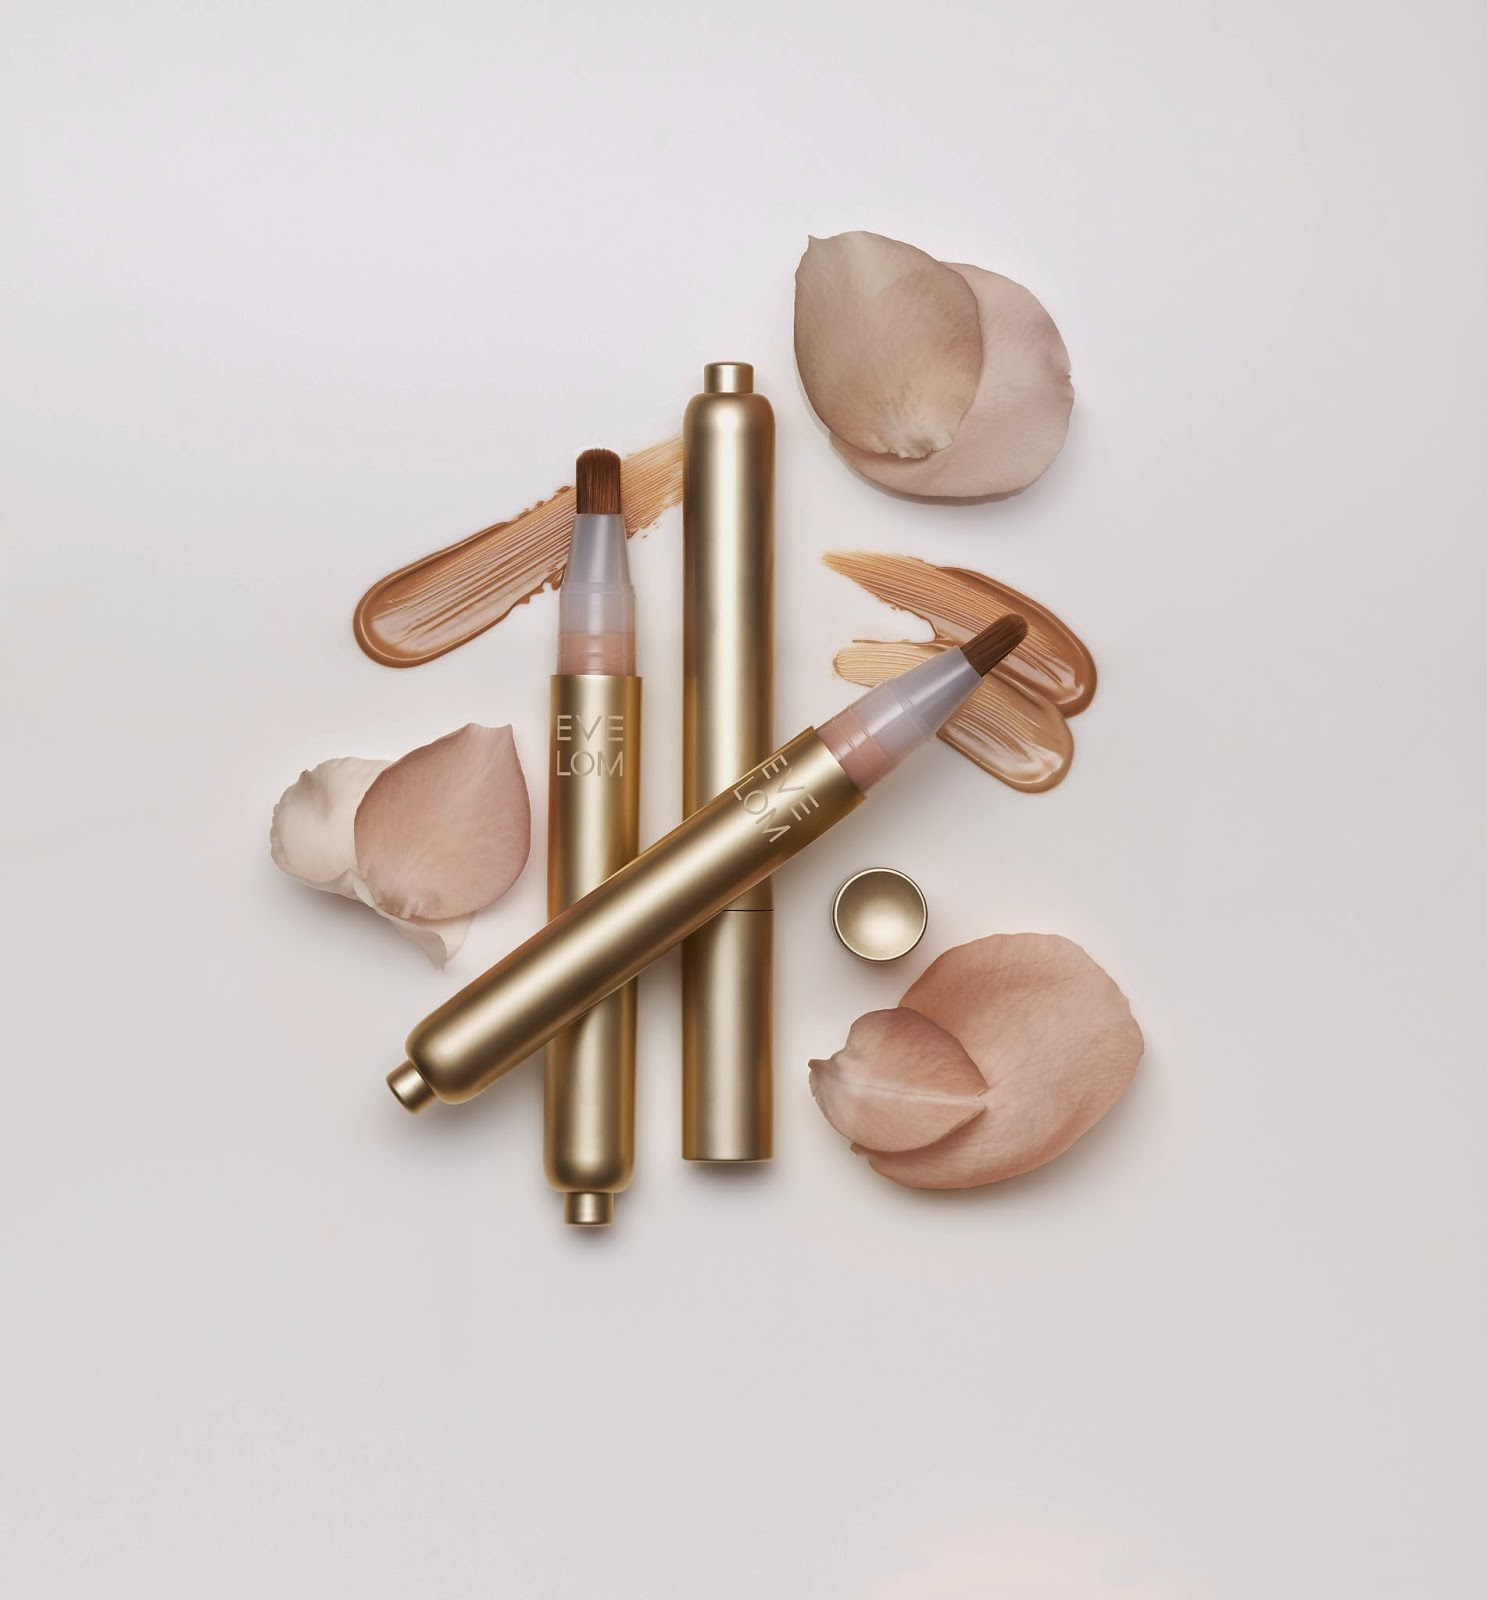 eve lom, light illusion concealer, radiance perfected